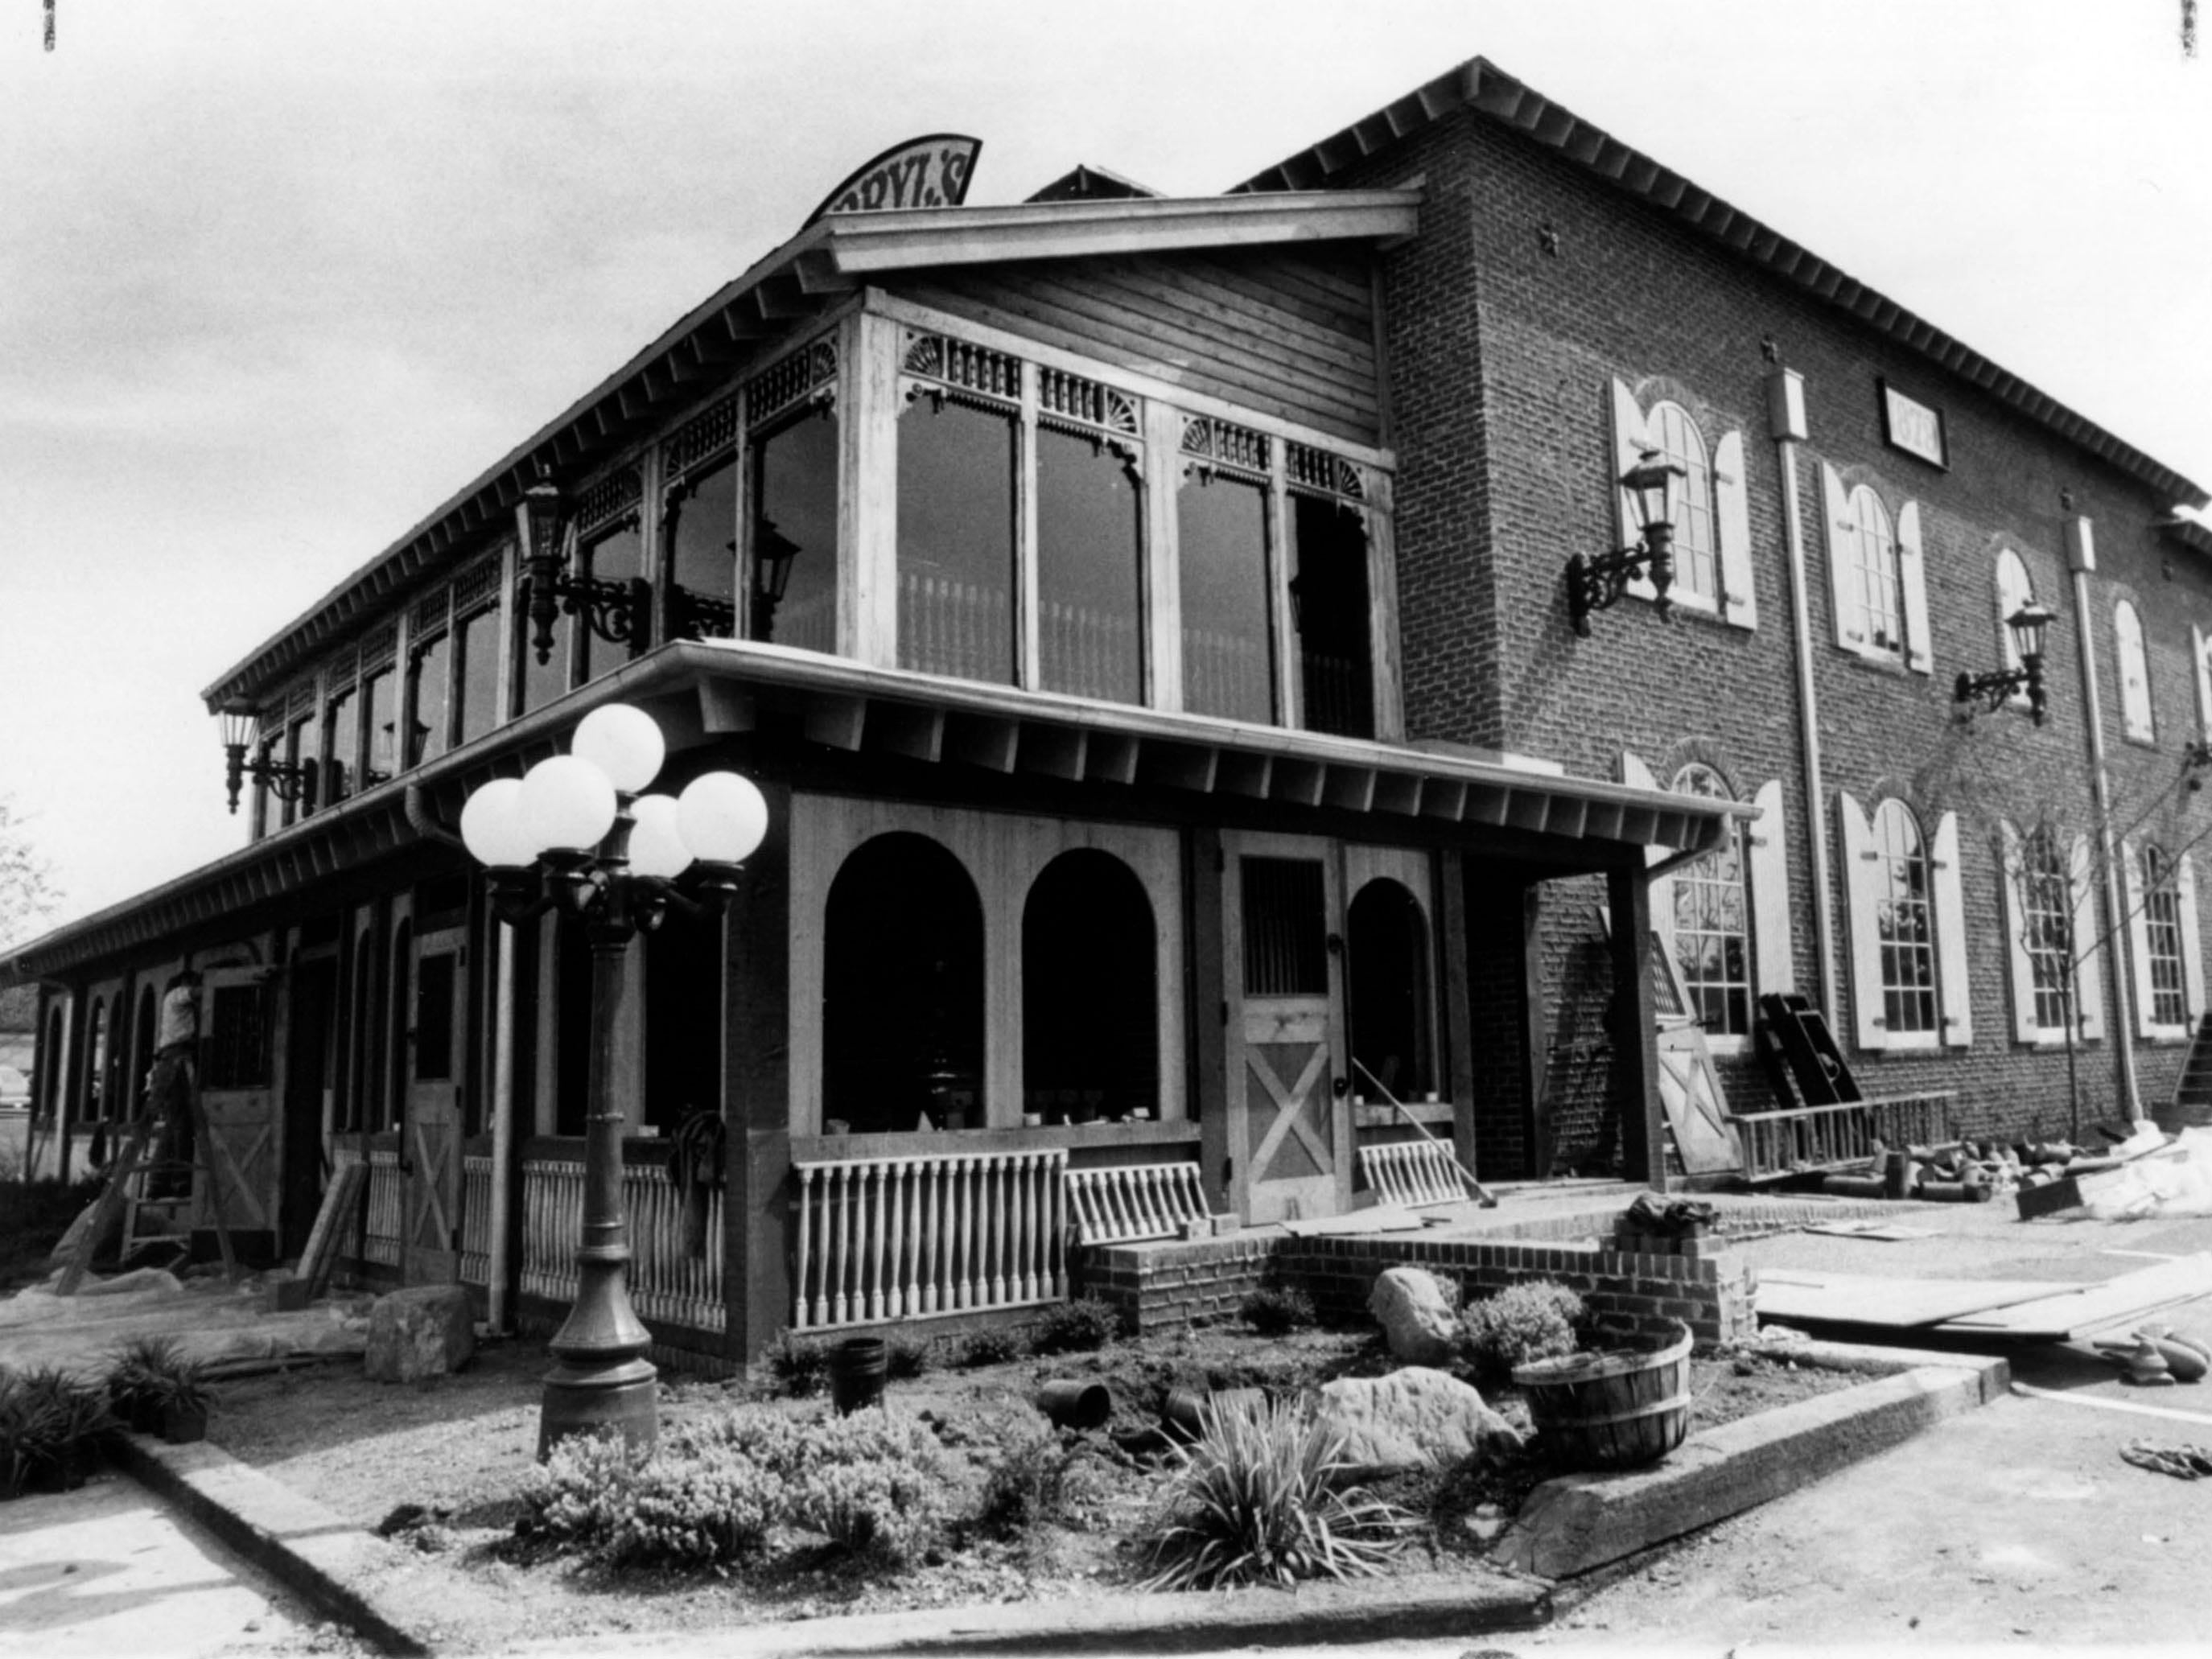 Darryl's 1879 restaurant nearing completion in September 1979.